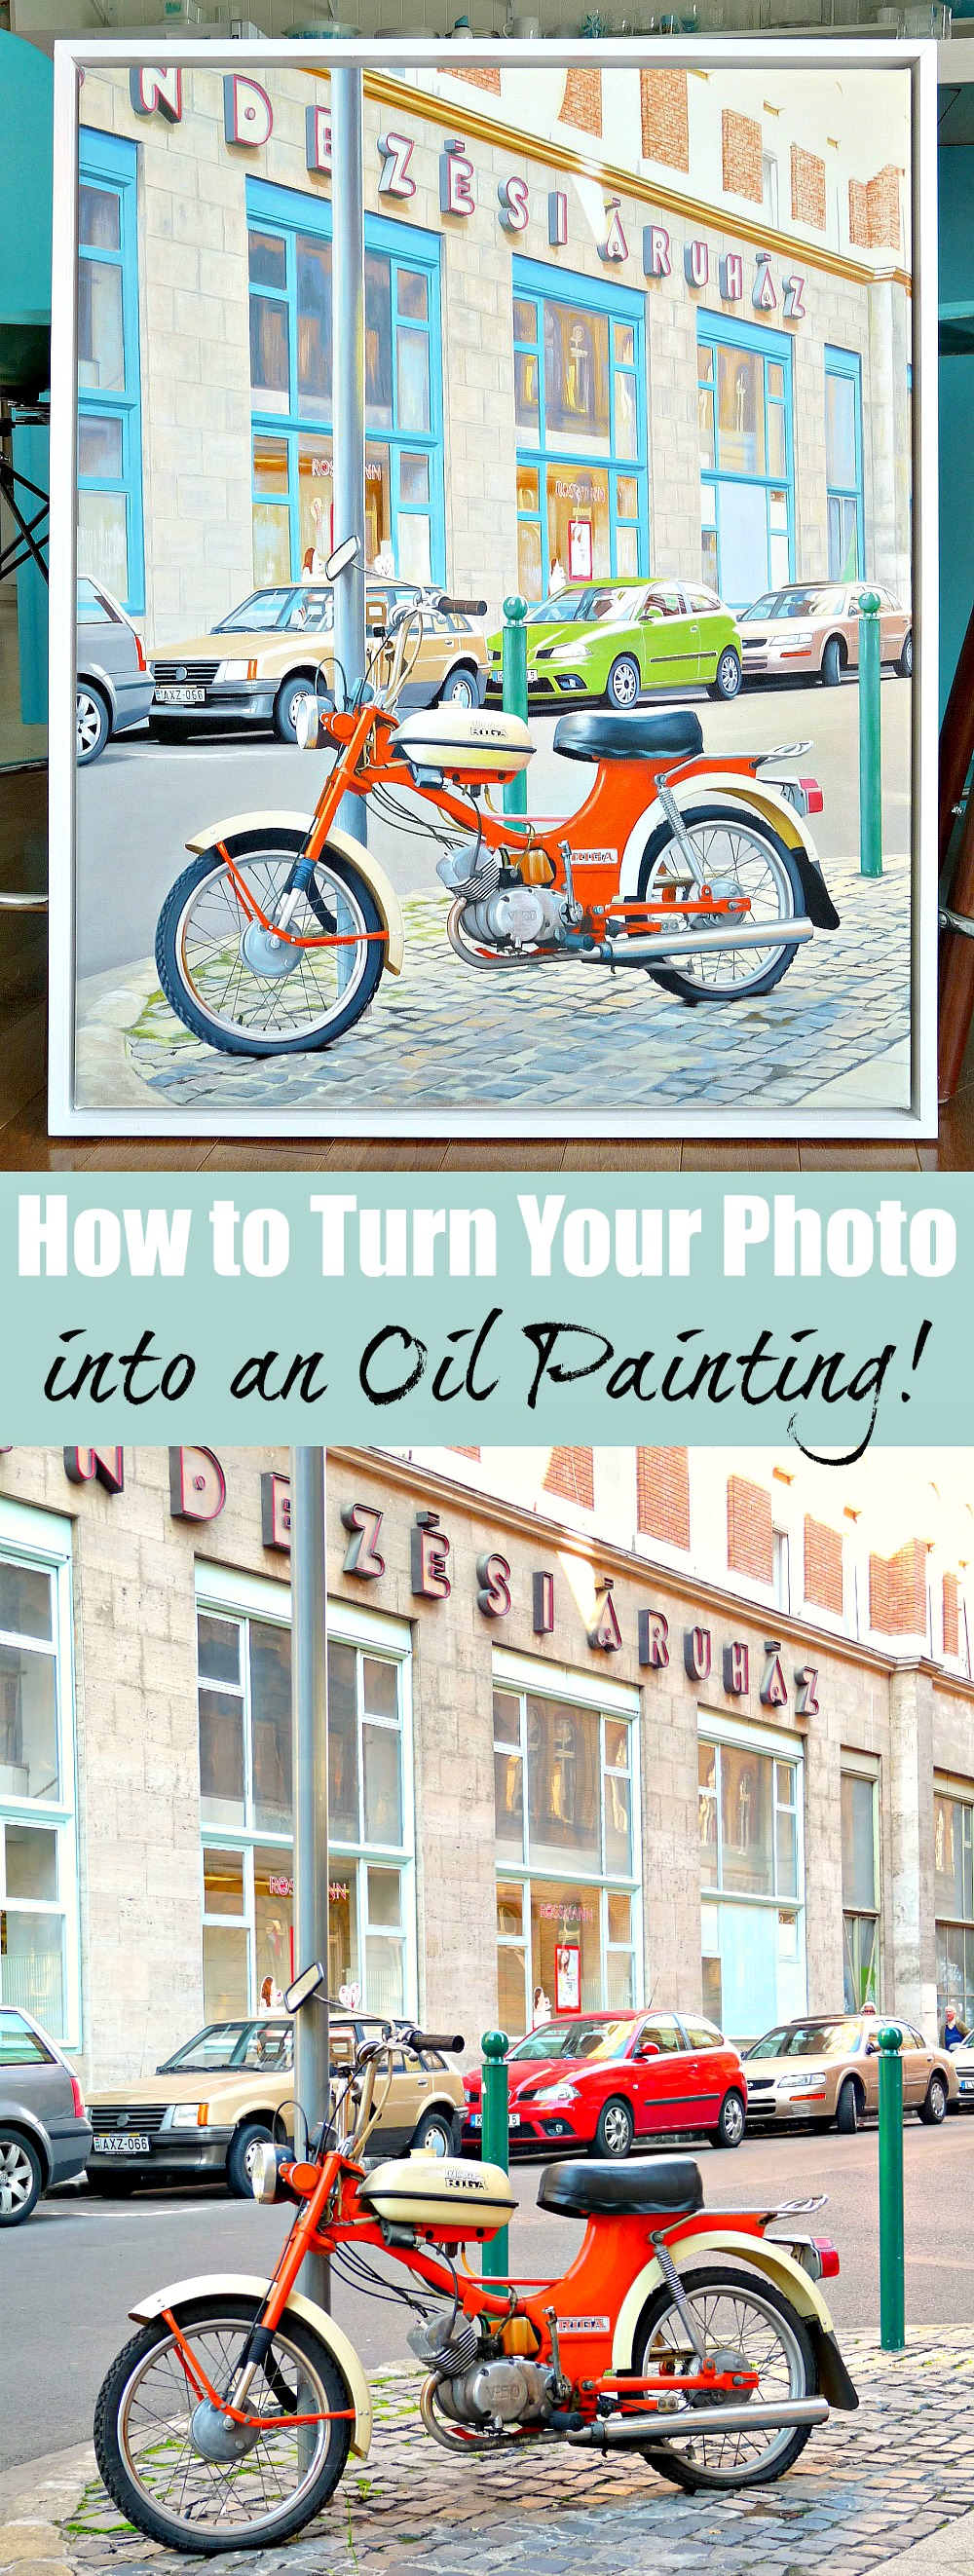 How to turn your photo into an oil painting